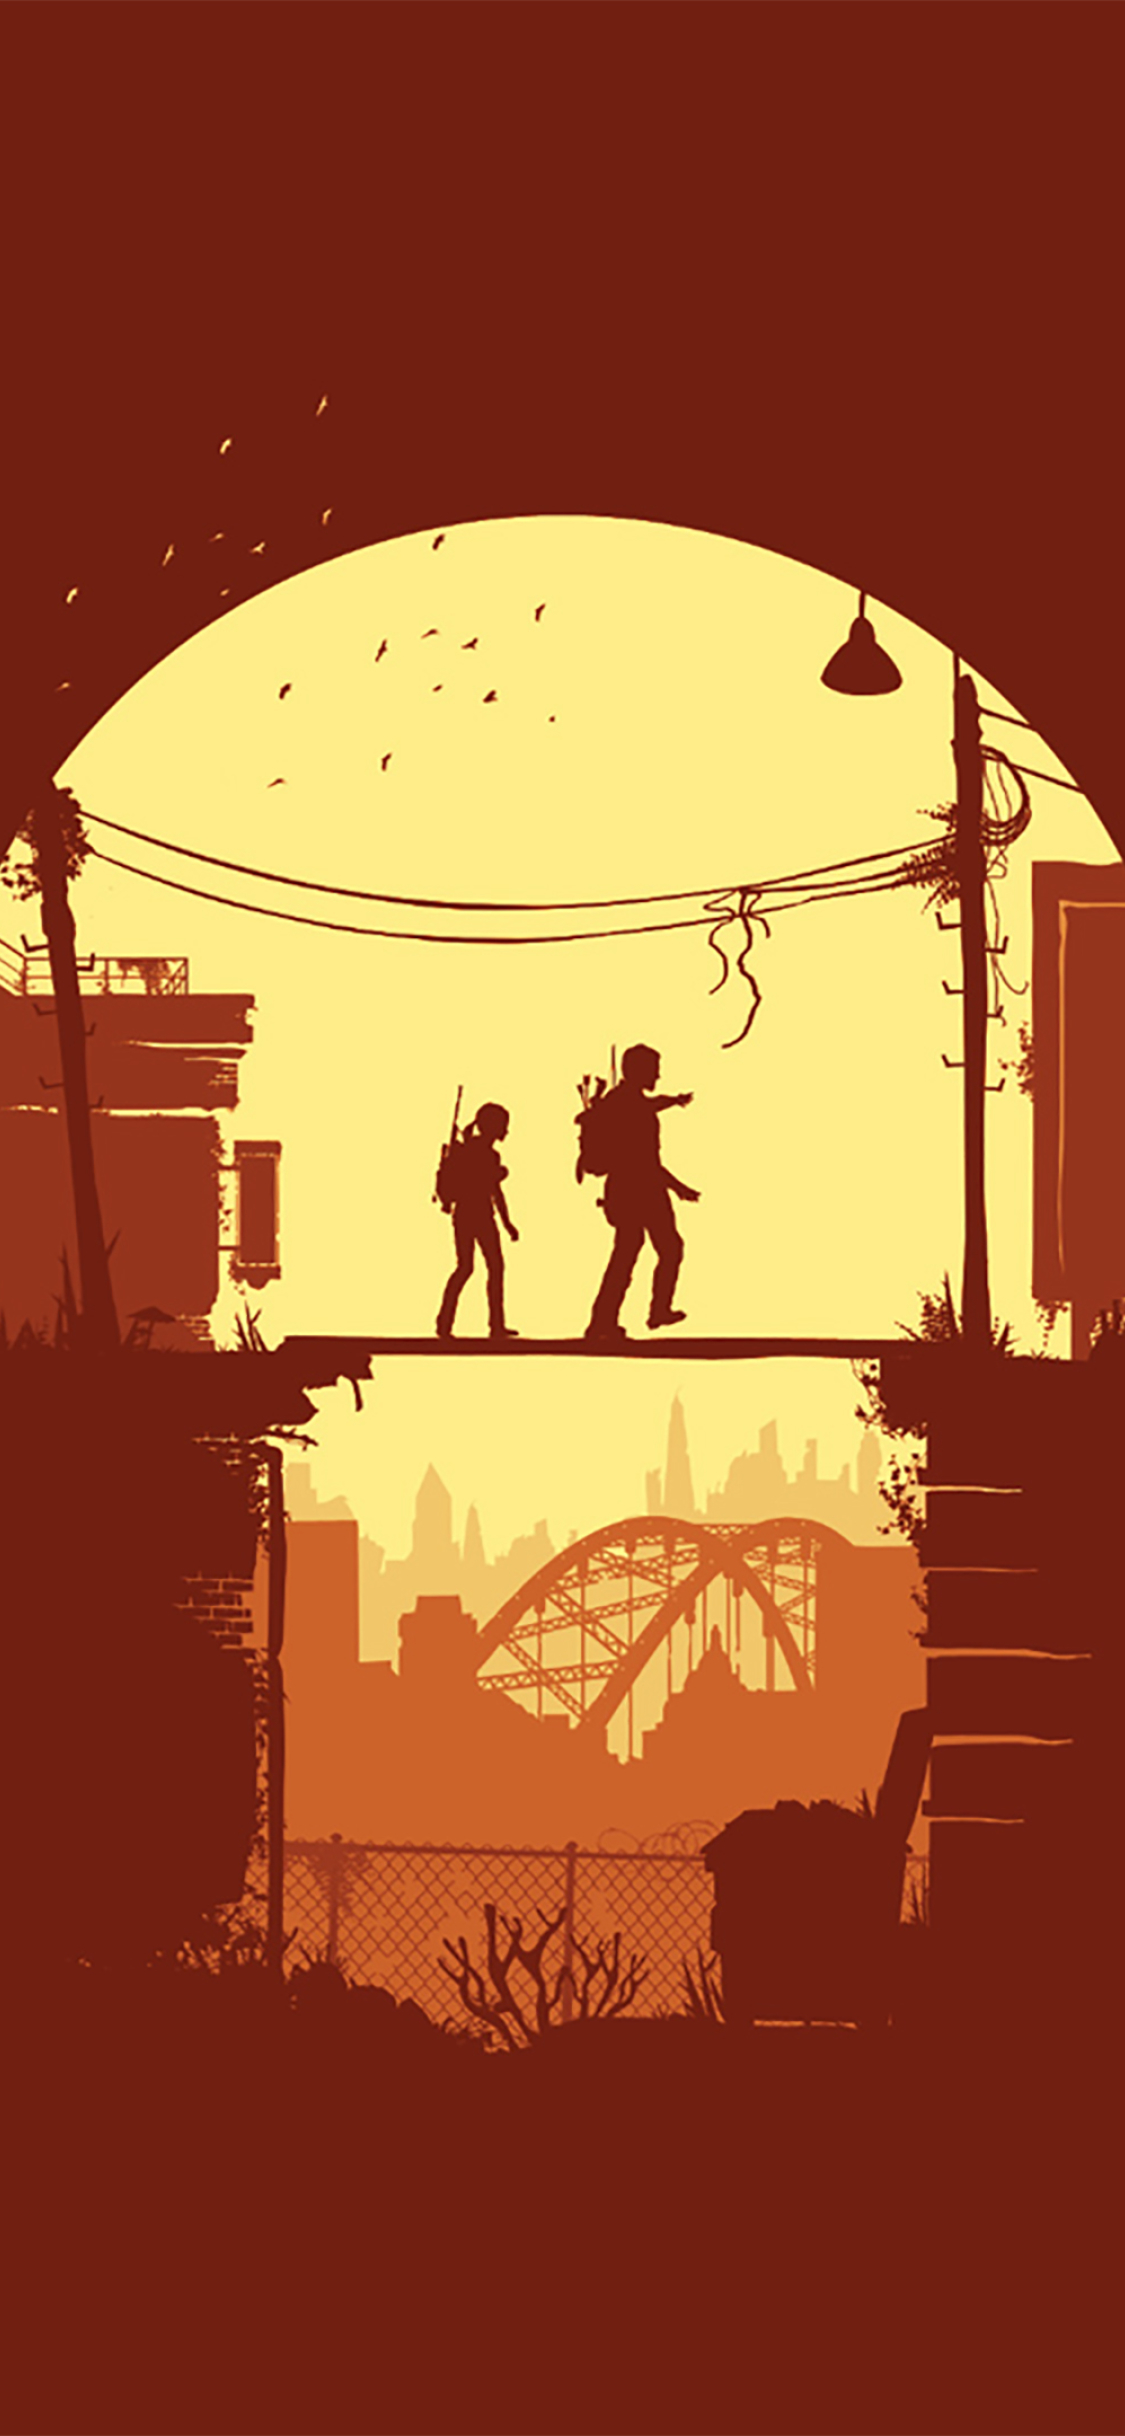 1125x2436 Joel And Ellie The Last Of Us Minimal Iphone Xs Iphone